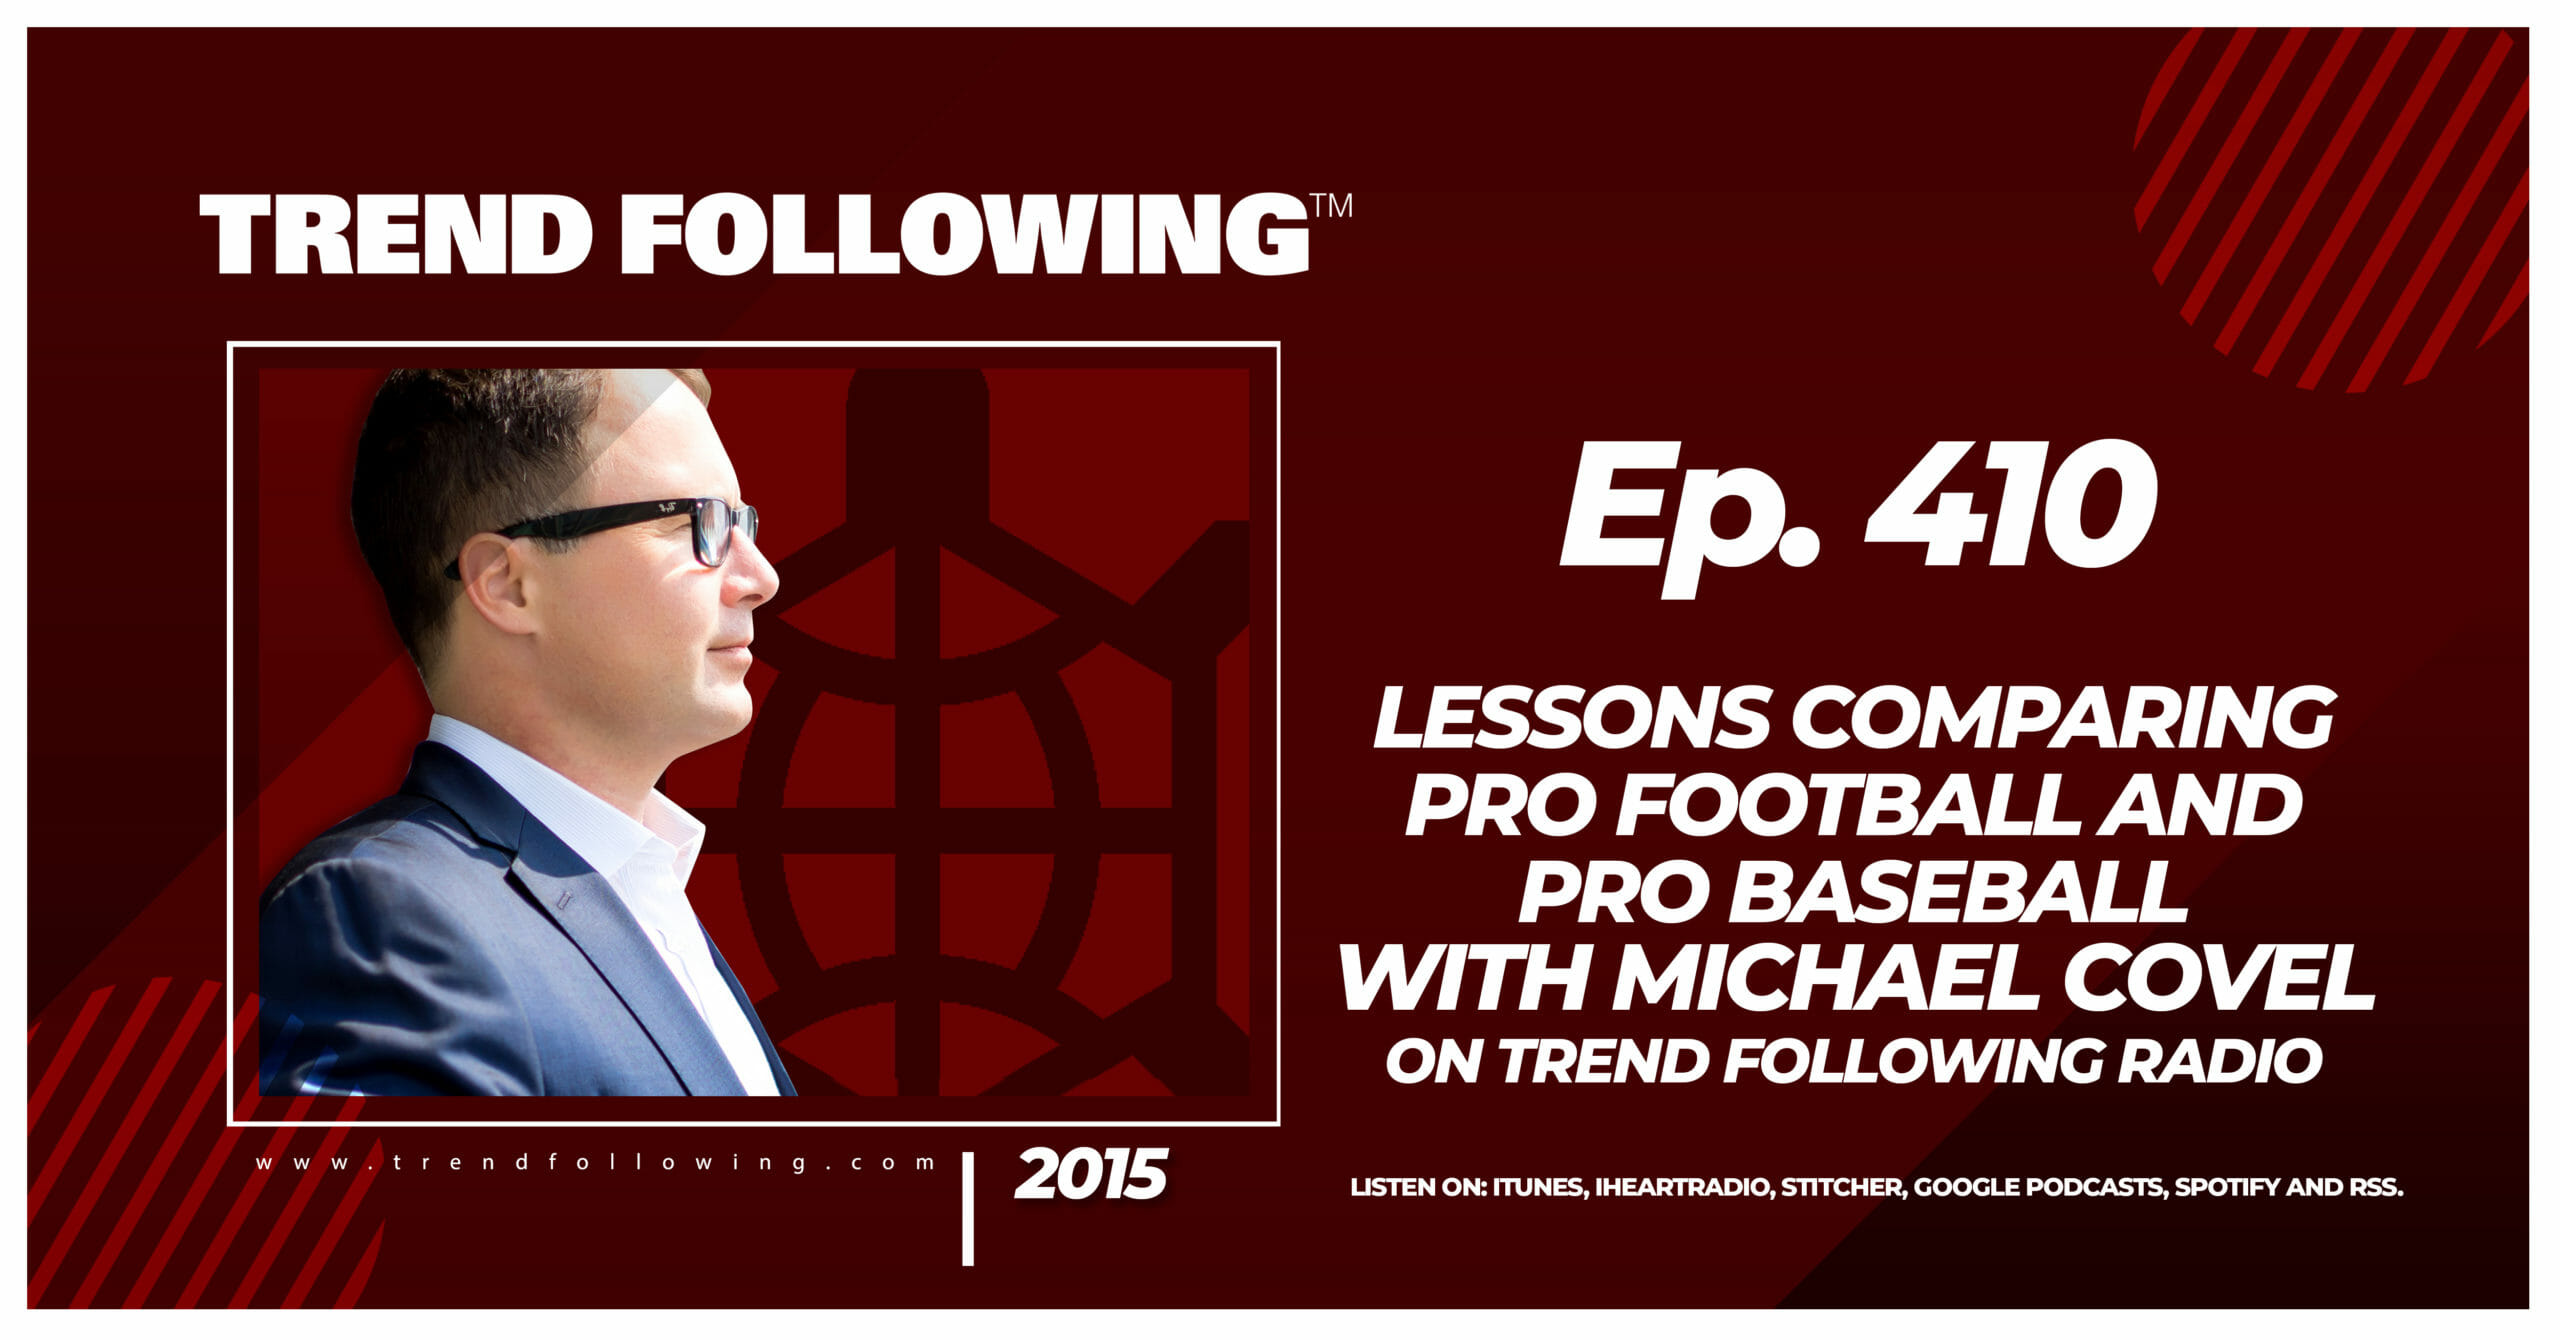 Lessons Comparing Pro Football and Pro Baseball with Michael Covel on Trend Following Radio